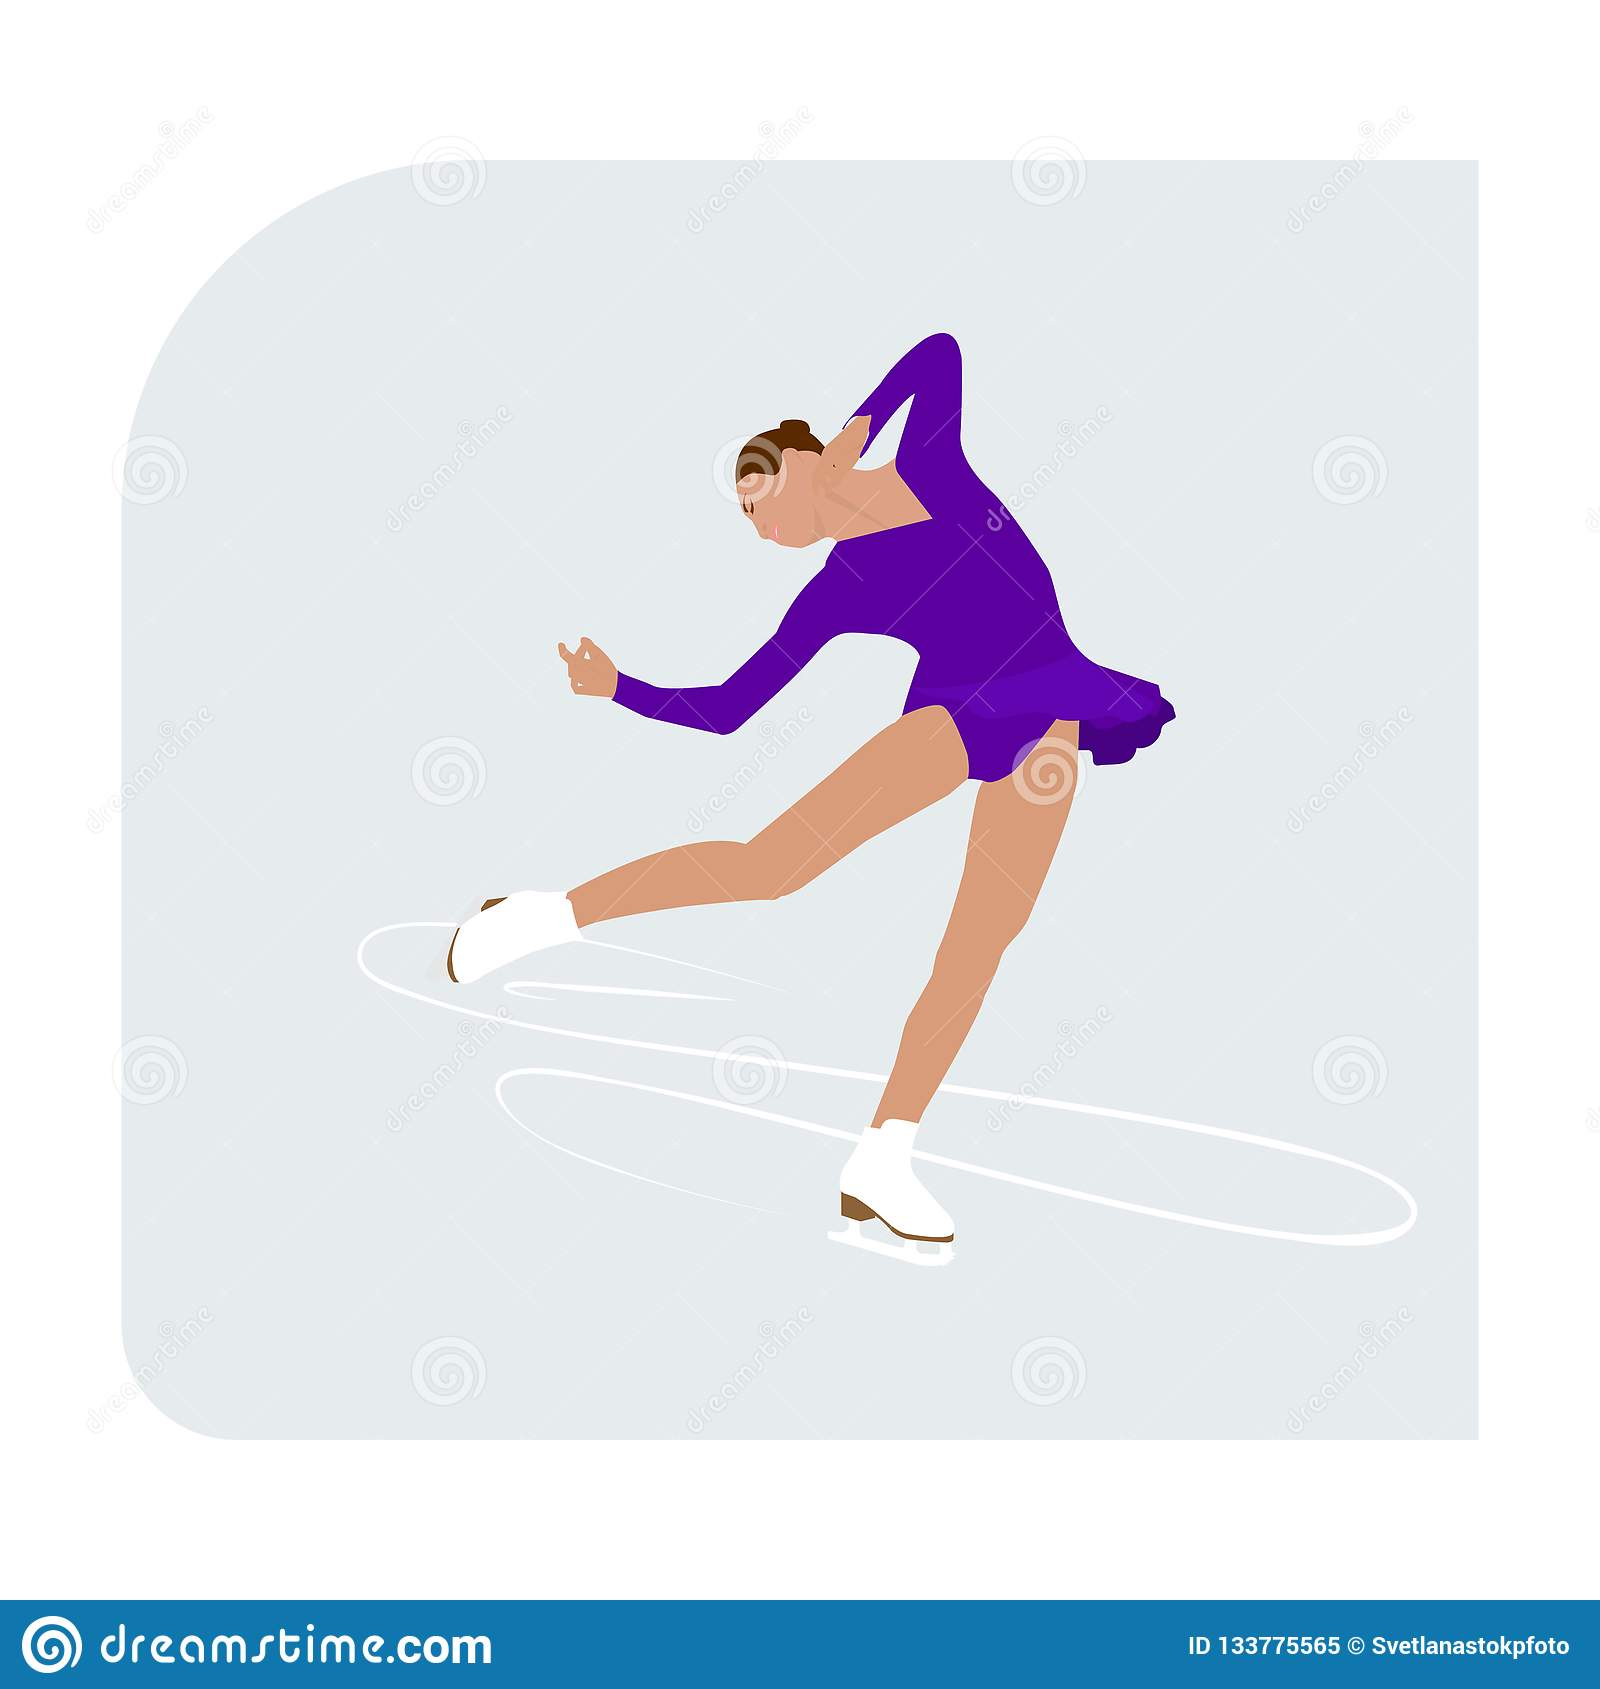 Figure skating rink with skater athlete winter sport woman lady